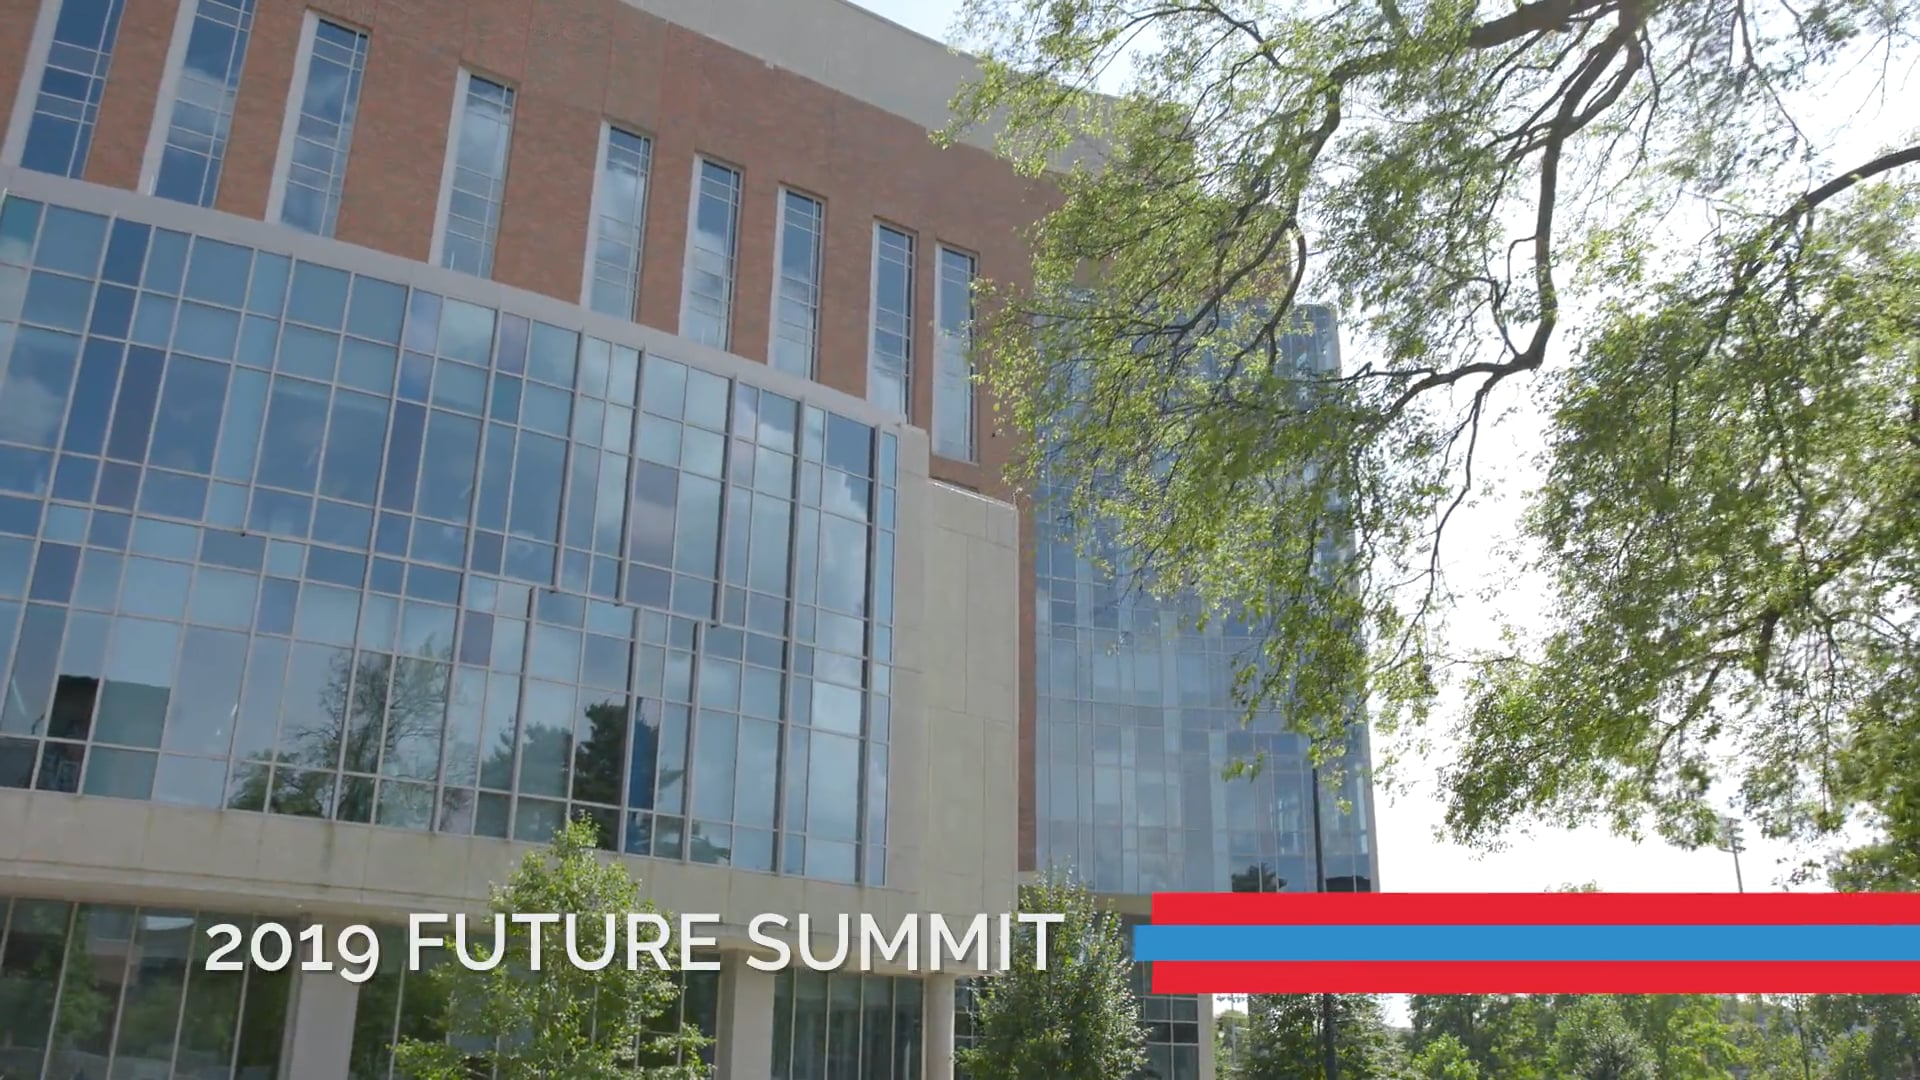 Millennial Action Project - 2019 Future Summit